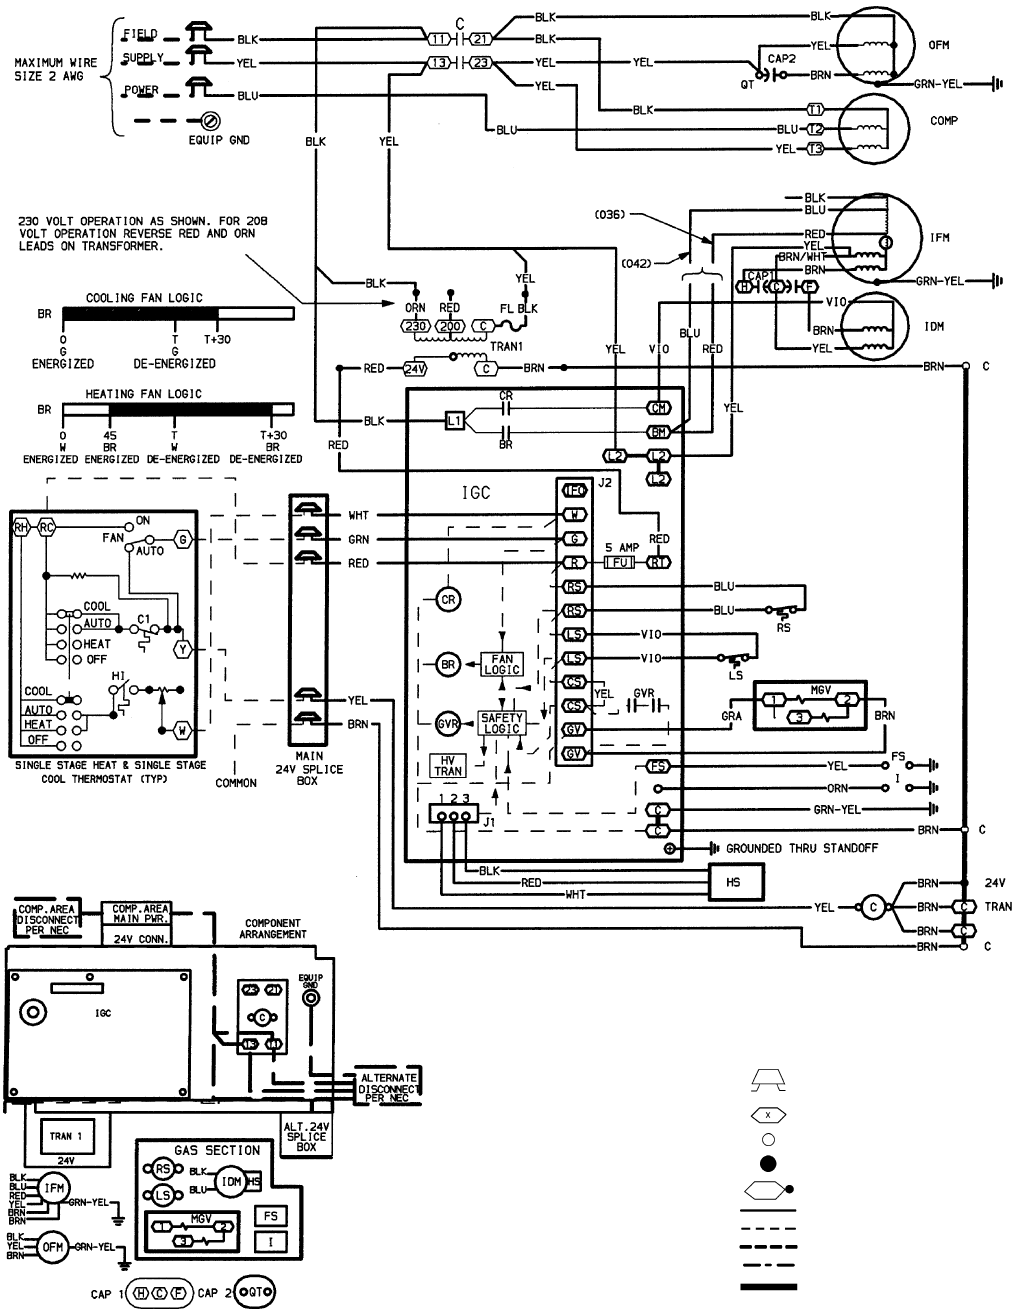 12f5562c 4eff 4259 8133 9d7867e60ebe bg20 page 32 of bryant gas heater 589a user guide manualsonline com Basic Electrical Wiring Diagrams at reclaimingppi.co